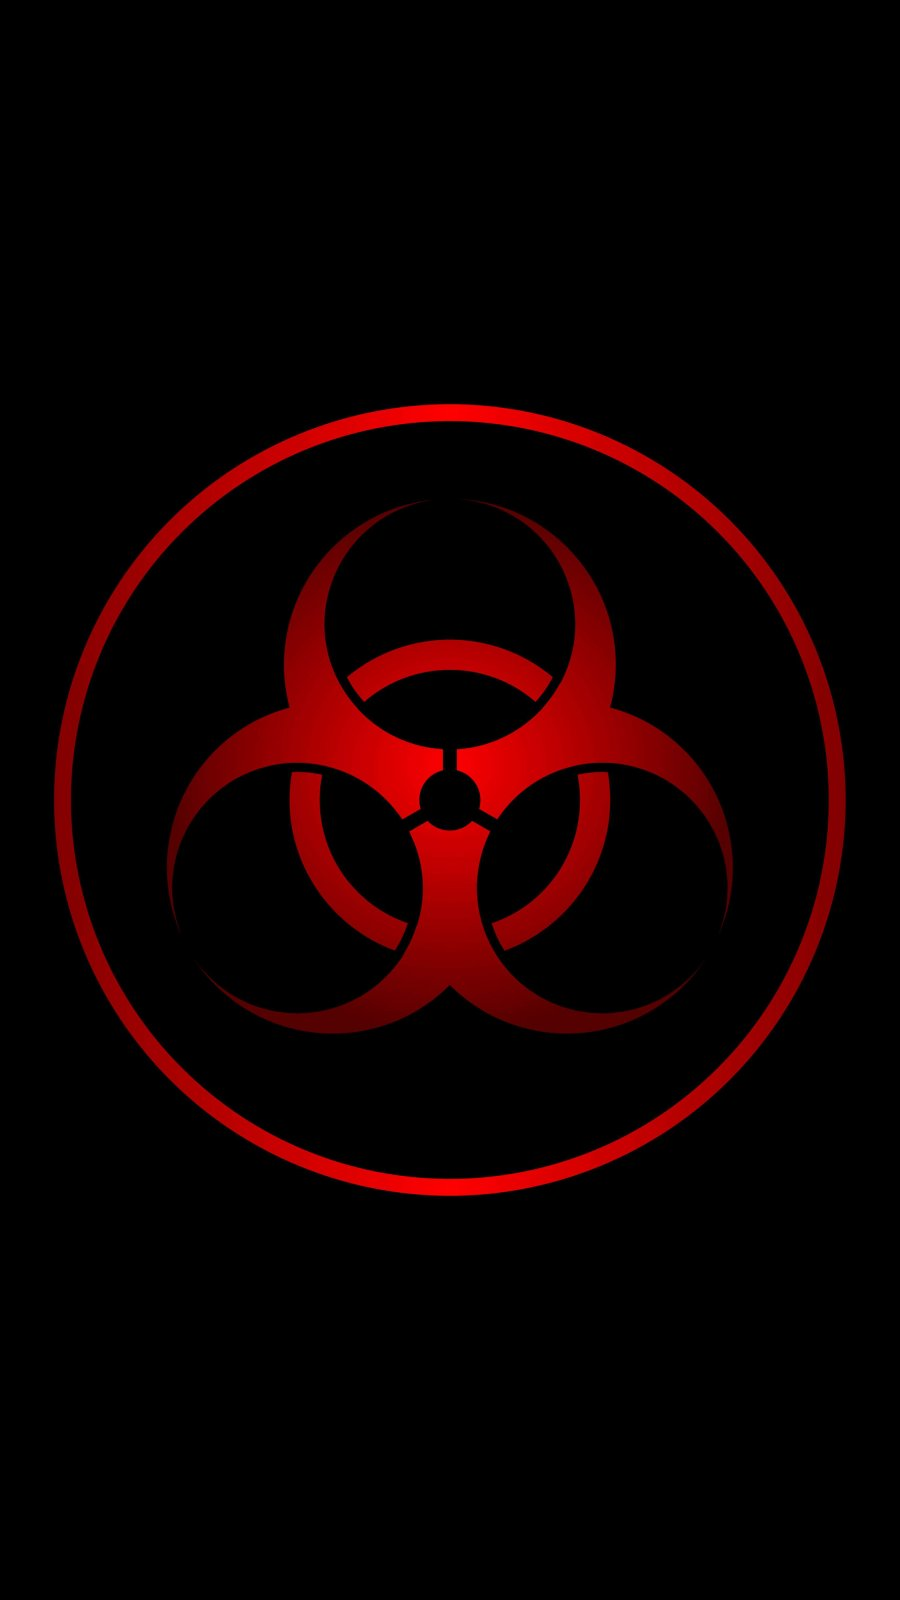 Red Biohazard iPhone Wallpaper